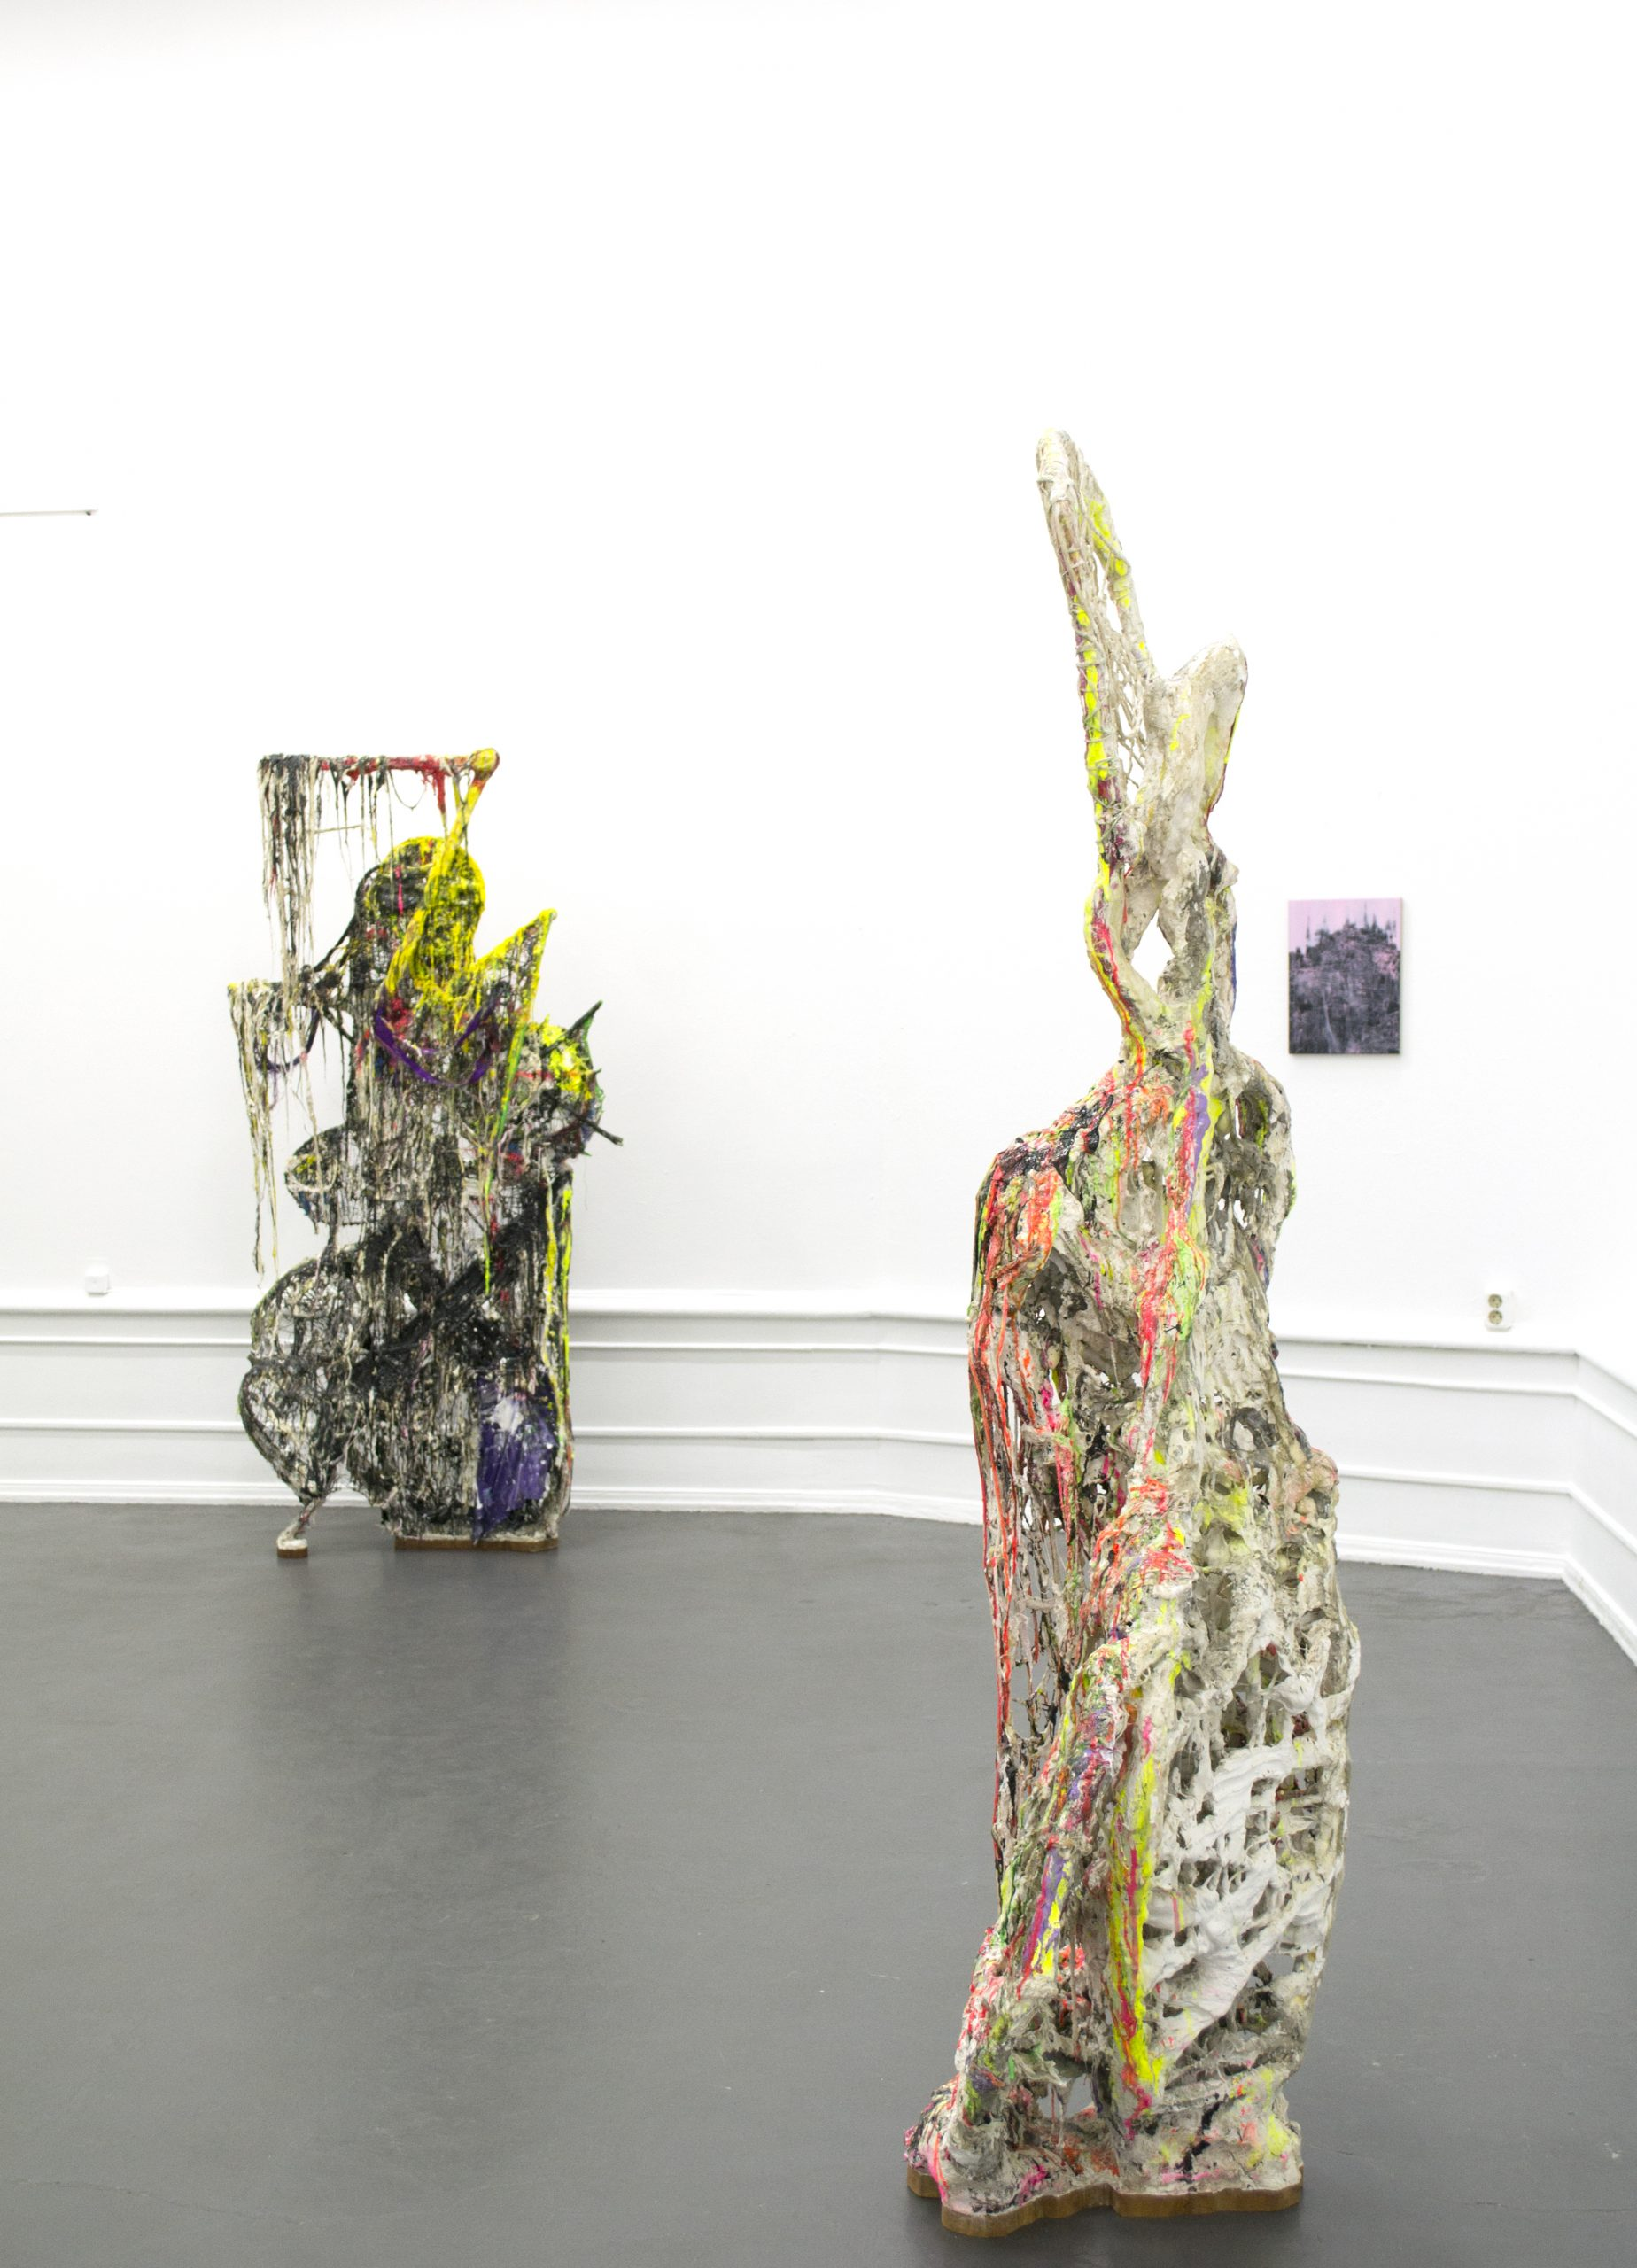 Jakob Westberg (sculpture), Lisa D Manner (paintings). Installation view: Sculpture and Painting in Dialogue, 2020